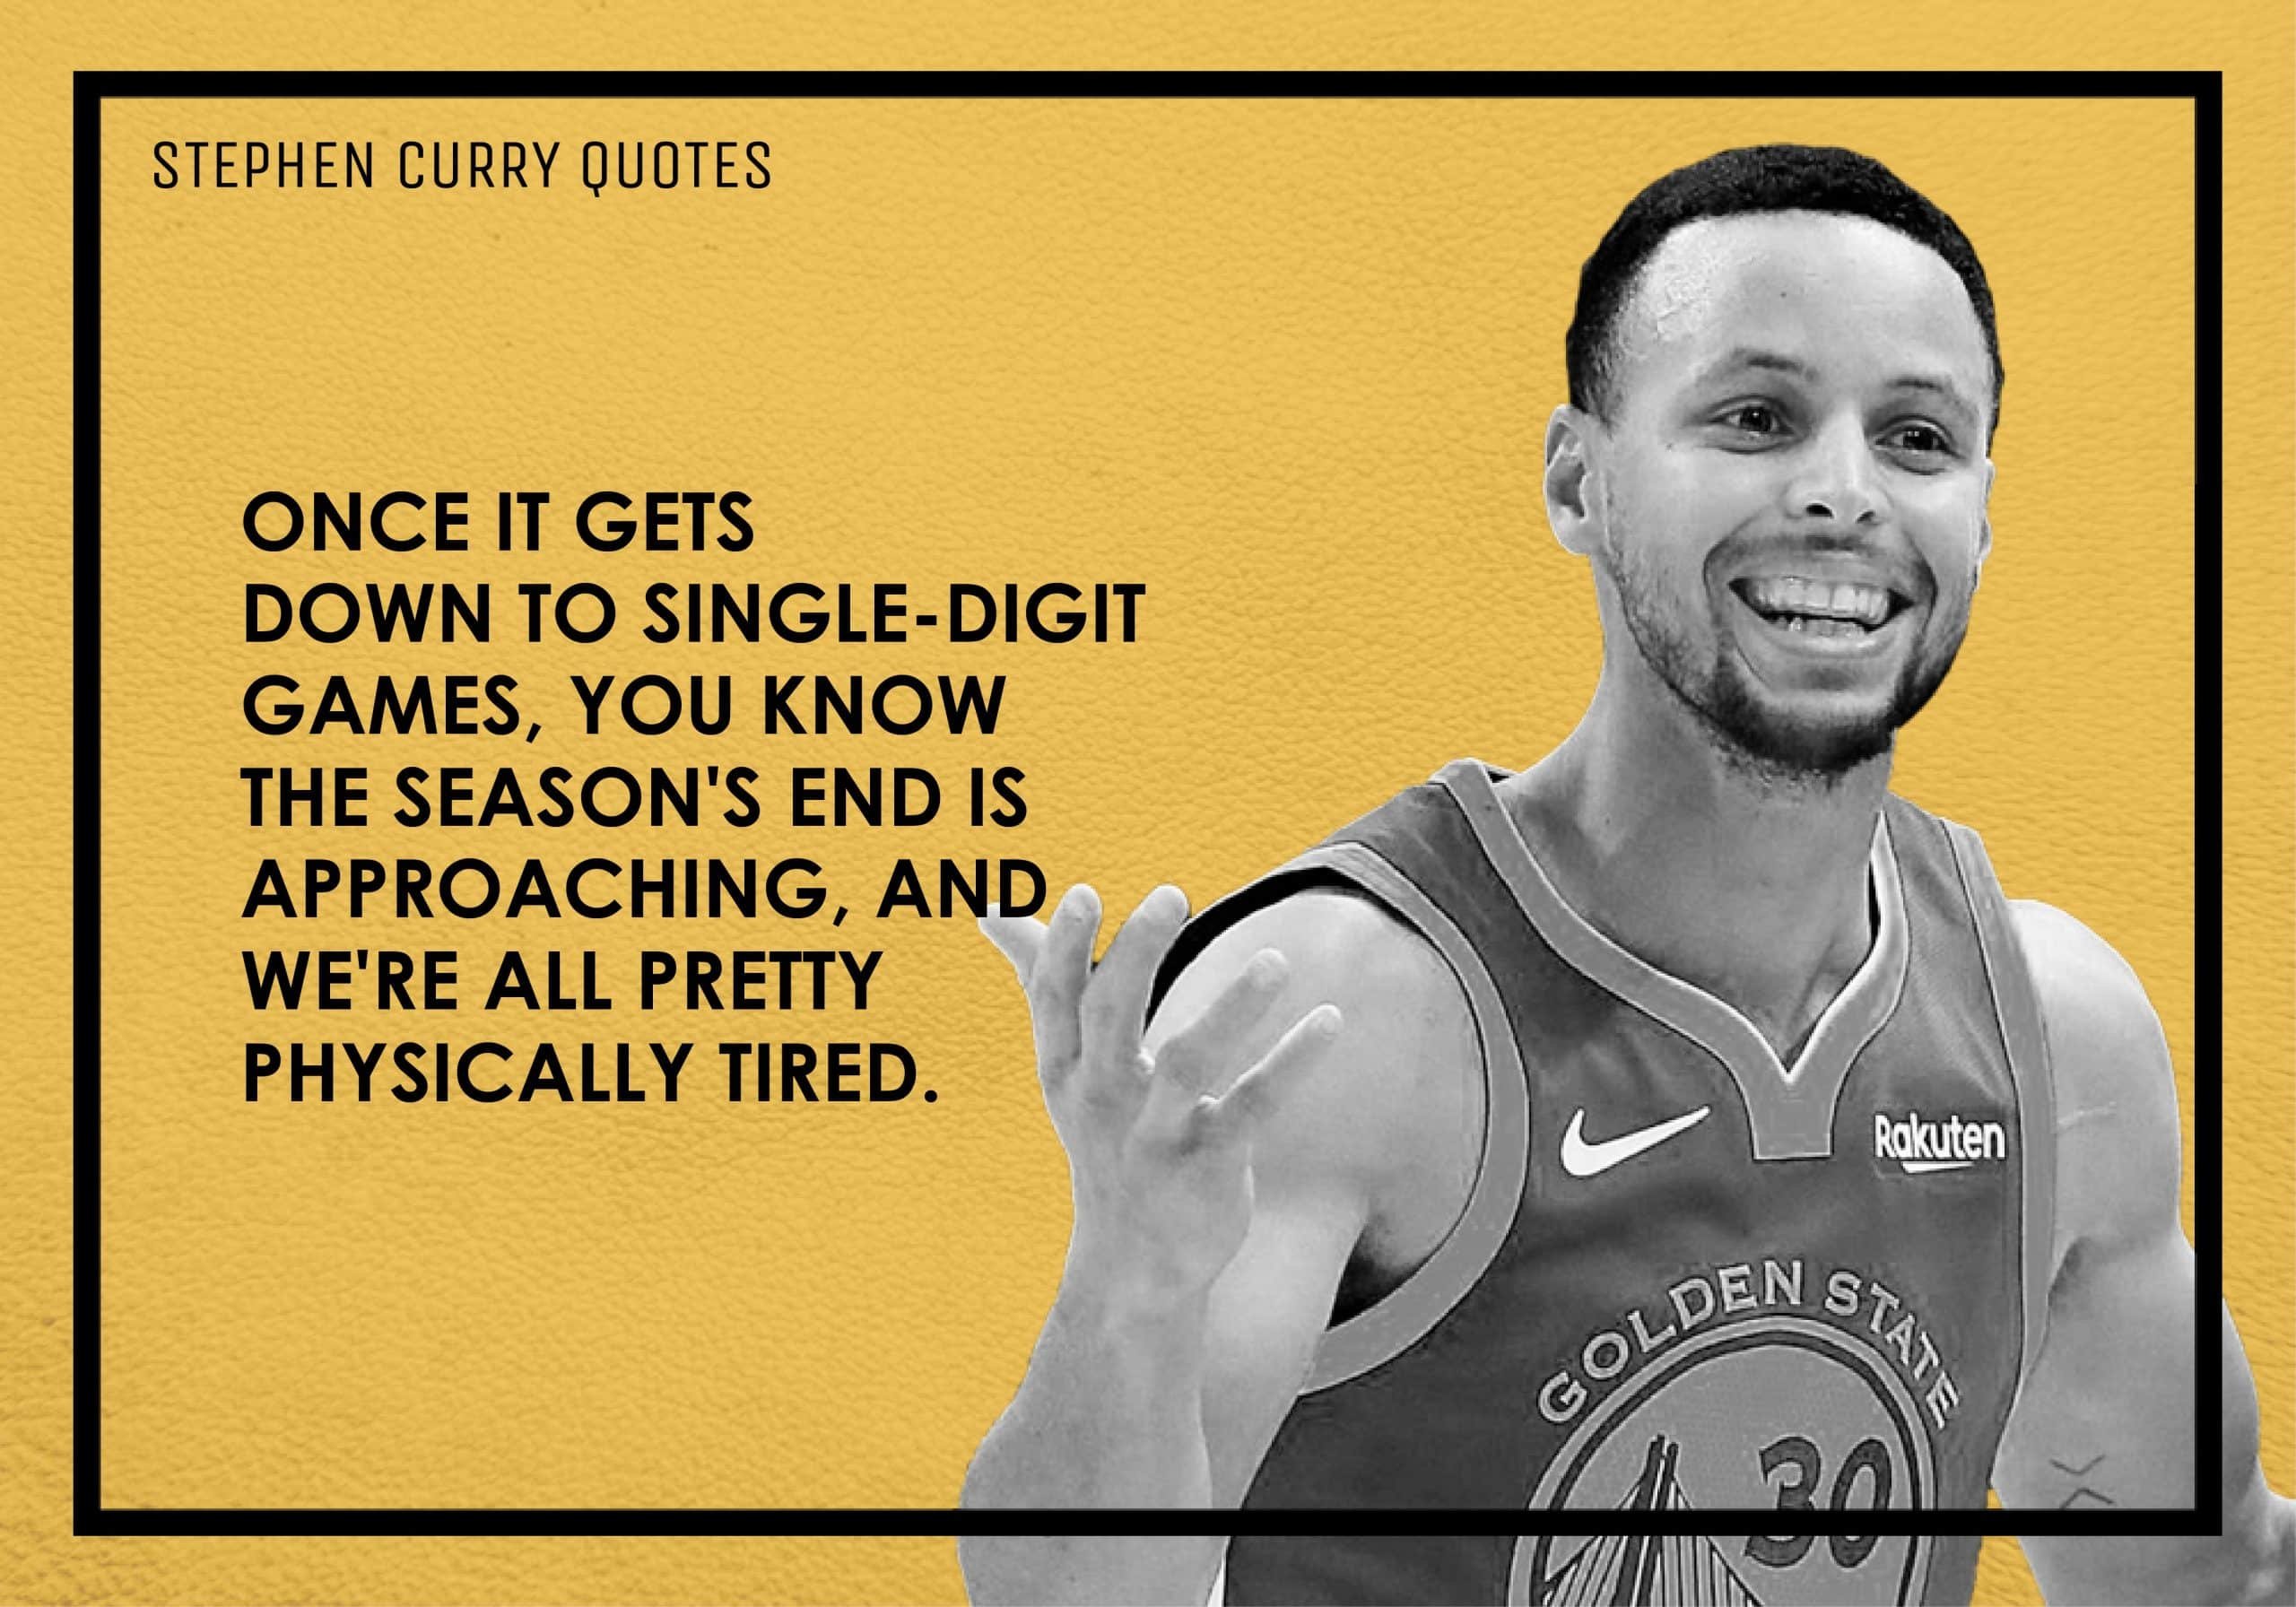 Stephen Curry Quotes (10)